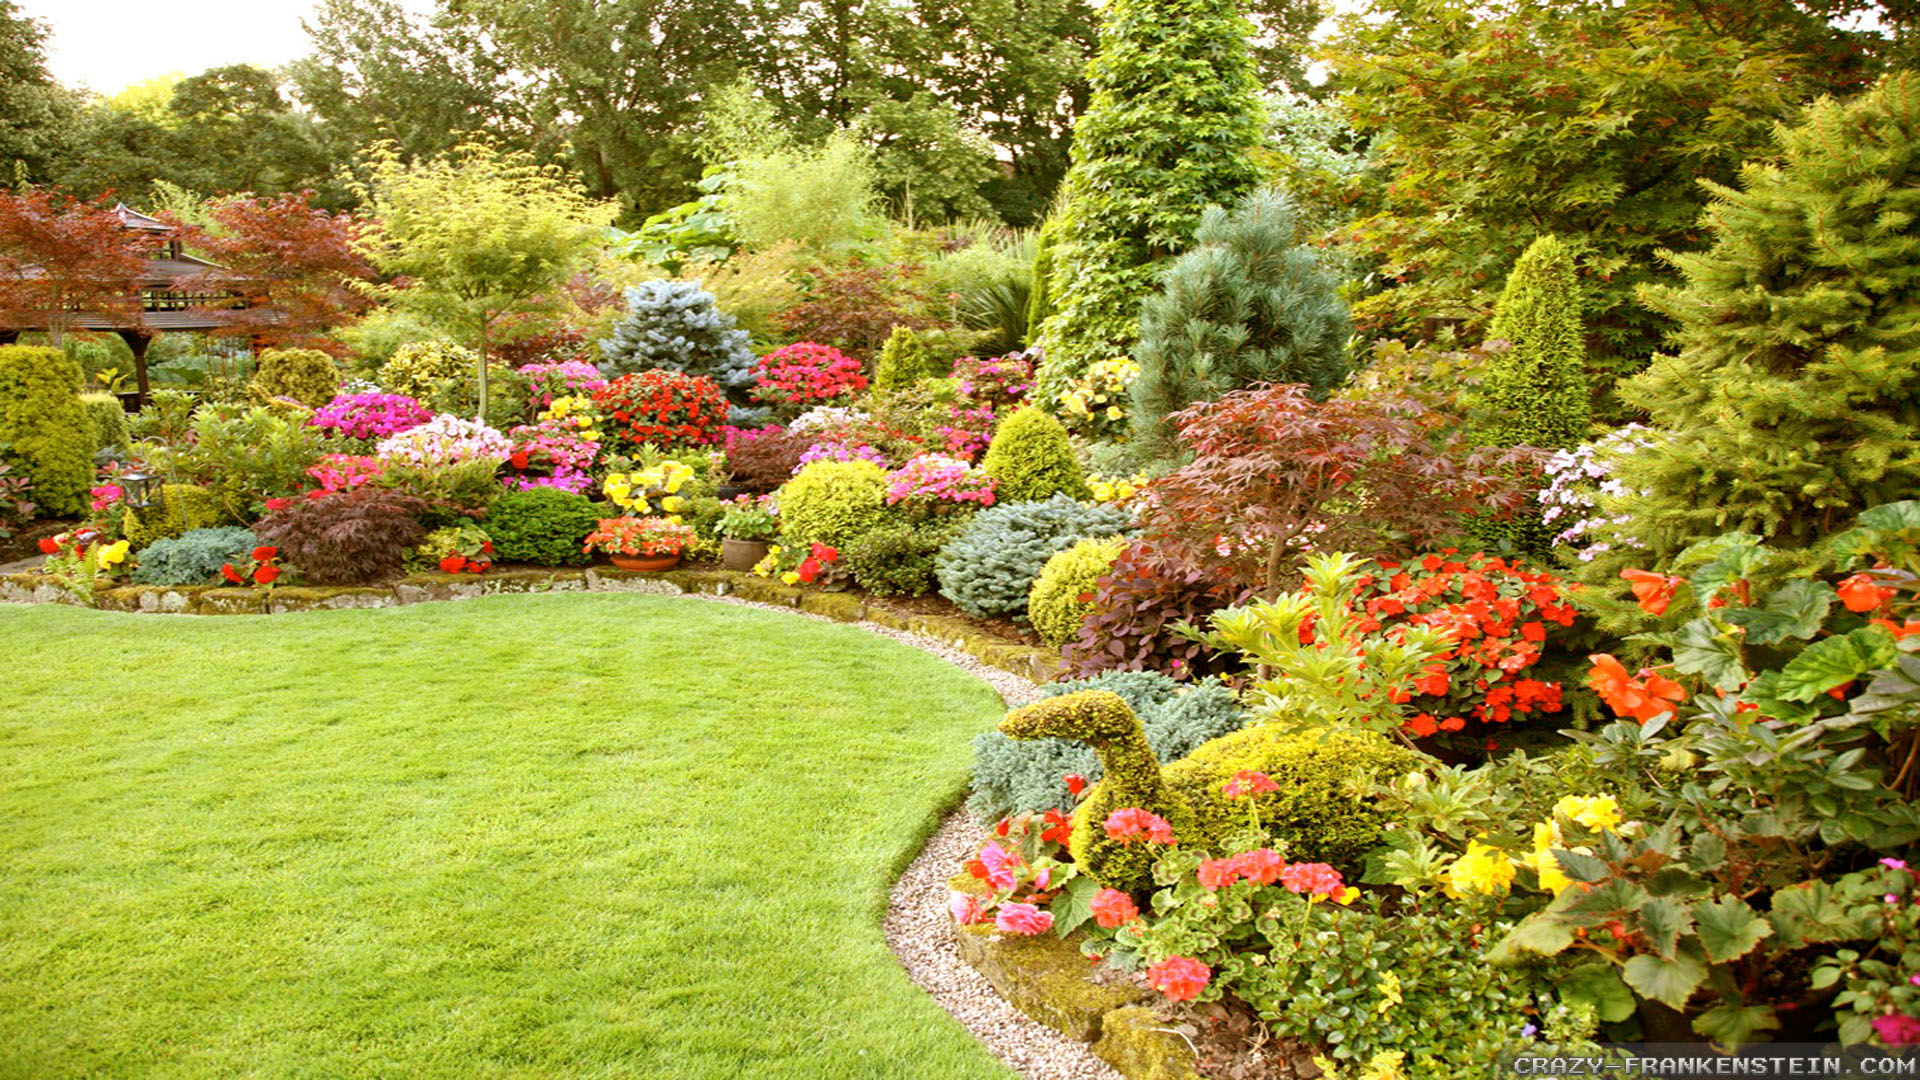 Choosing Shrubs That Thrive In Nashville Summers The Parke Company